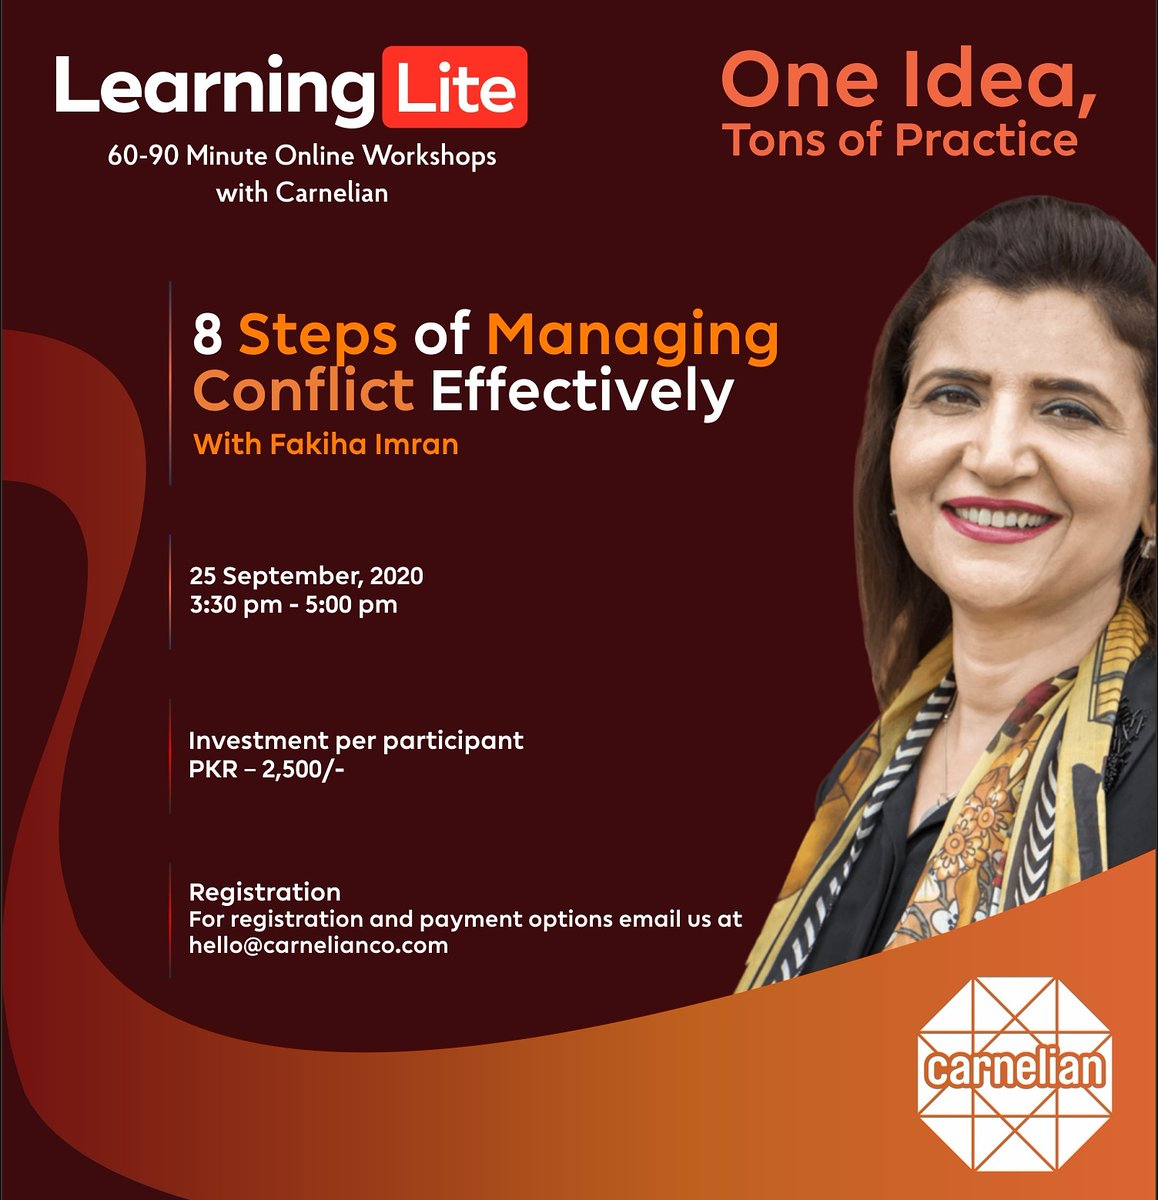 One Idea, Tons of Practise Hurry Up! Carnelian Learning Lite is happening on 25th Sept 2020 Fakiha Imran will be conducting an Online workshop about 8 steps of managing conflict effectively  #conflict #managingconflict #effectiveness #practical #challenge #emtional #carnelian https://t.co/2yTL6QNFSR